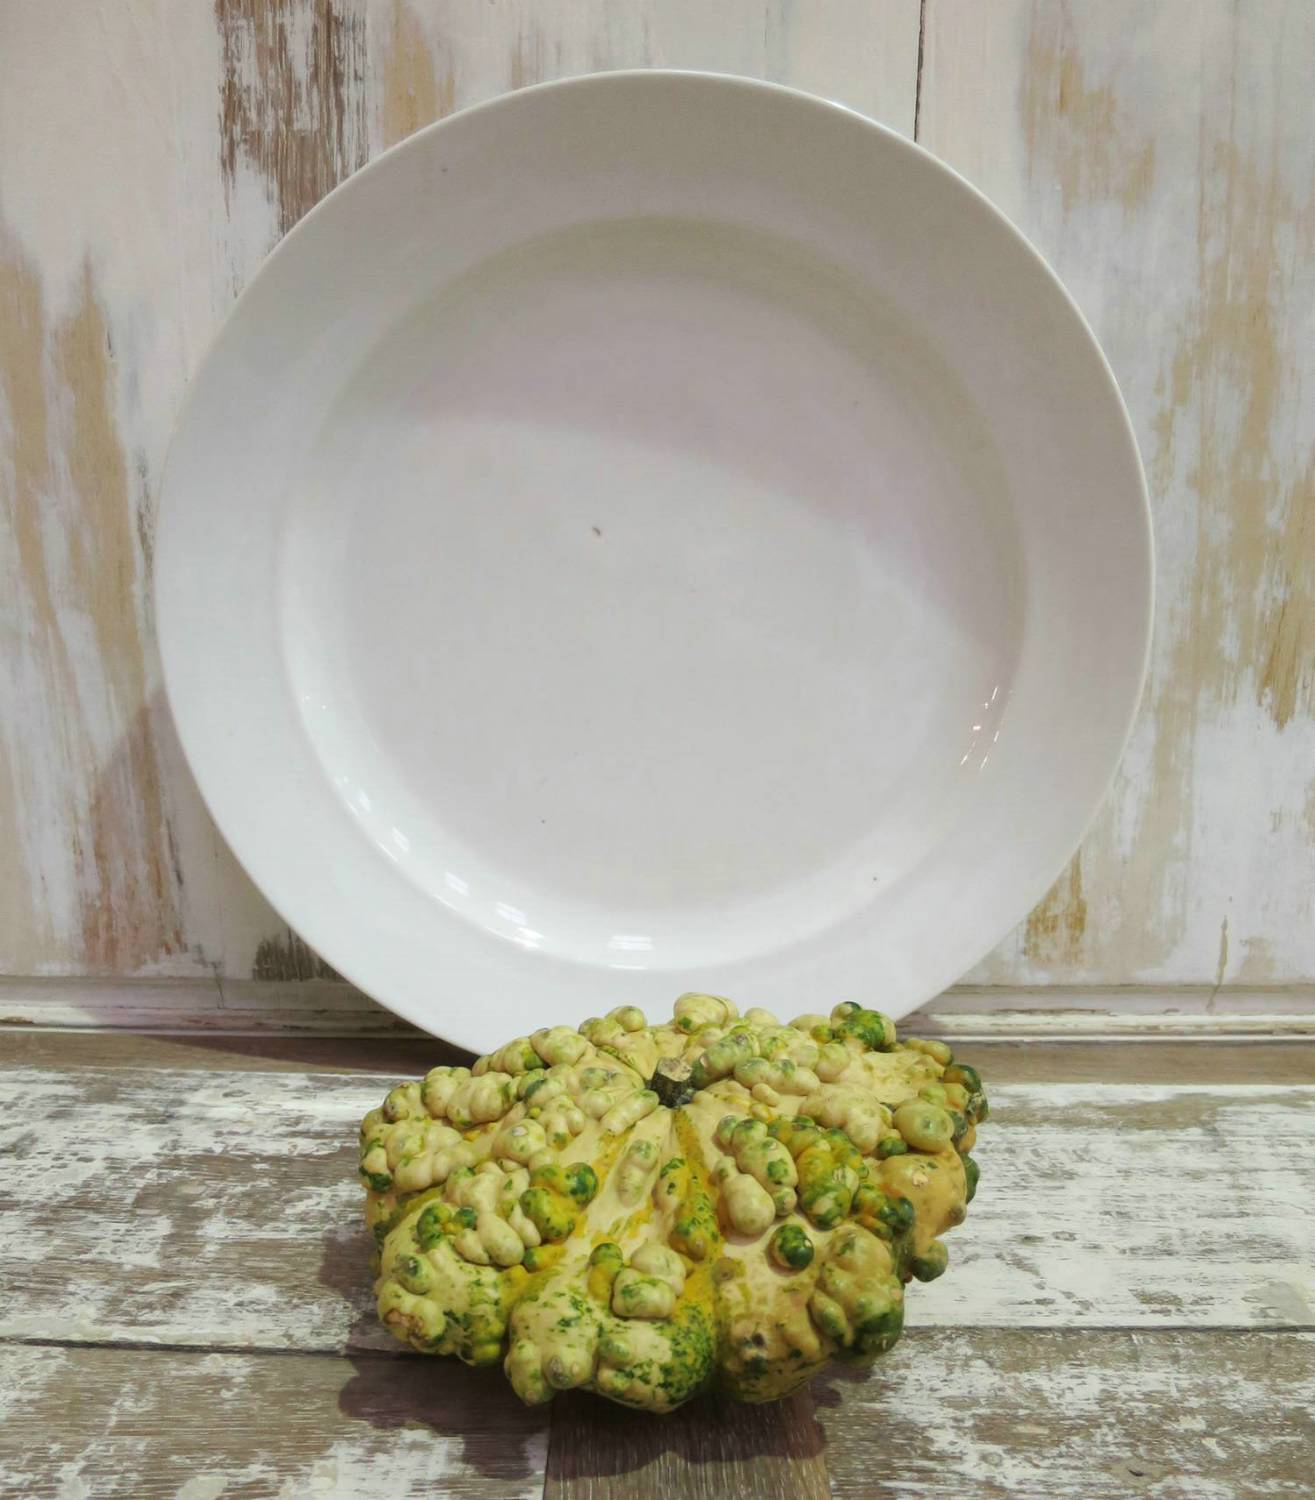 Huge French White Round Serving Platter